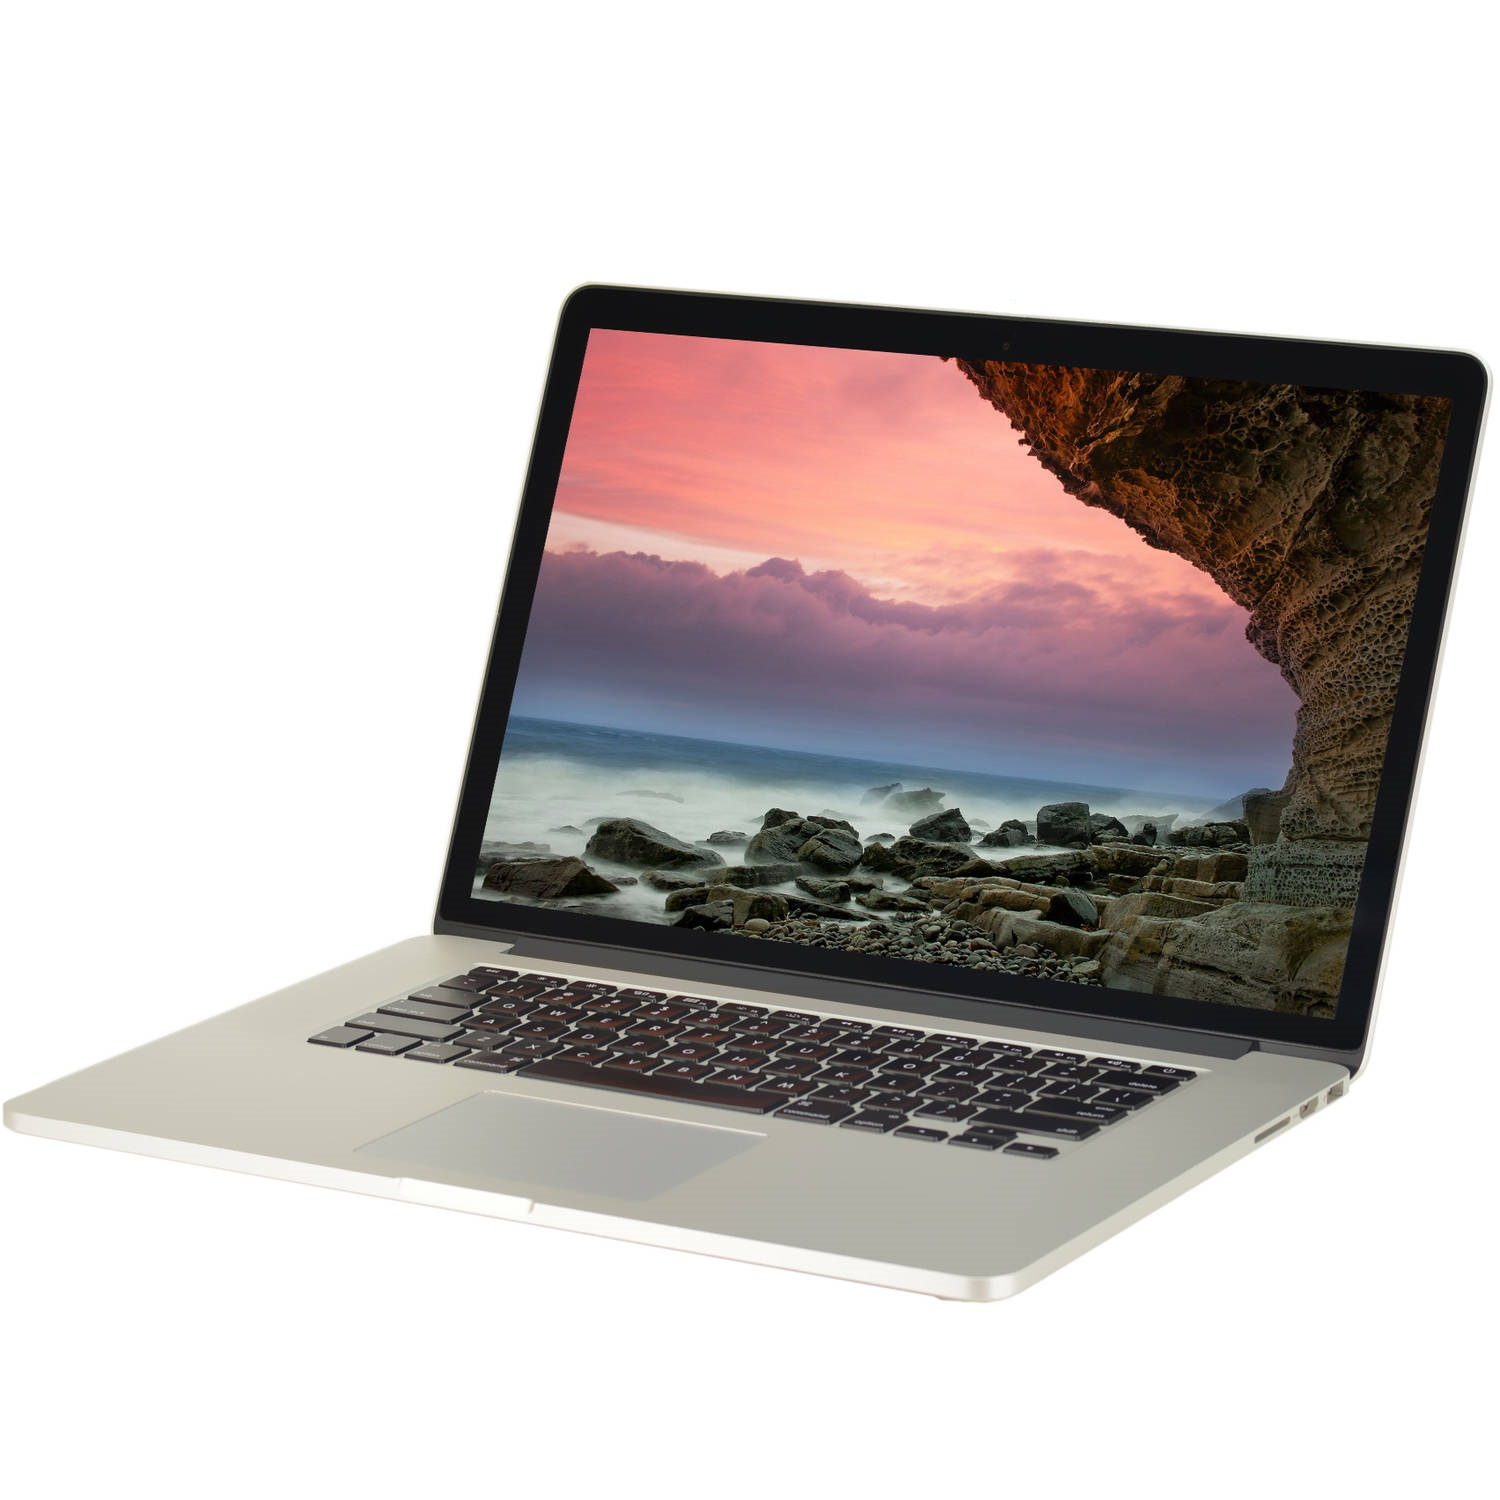 "Refurbished Apple MacBook Pro 15.4"" Retina i7-3635QM 2.4GHz 16GB 256GB SSD Laptop ME664LL A by Apple"